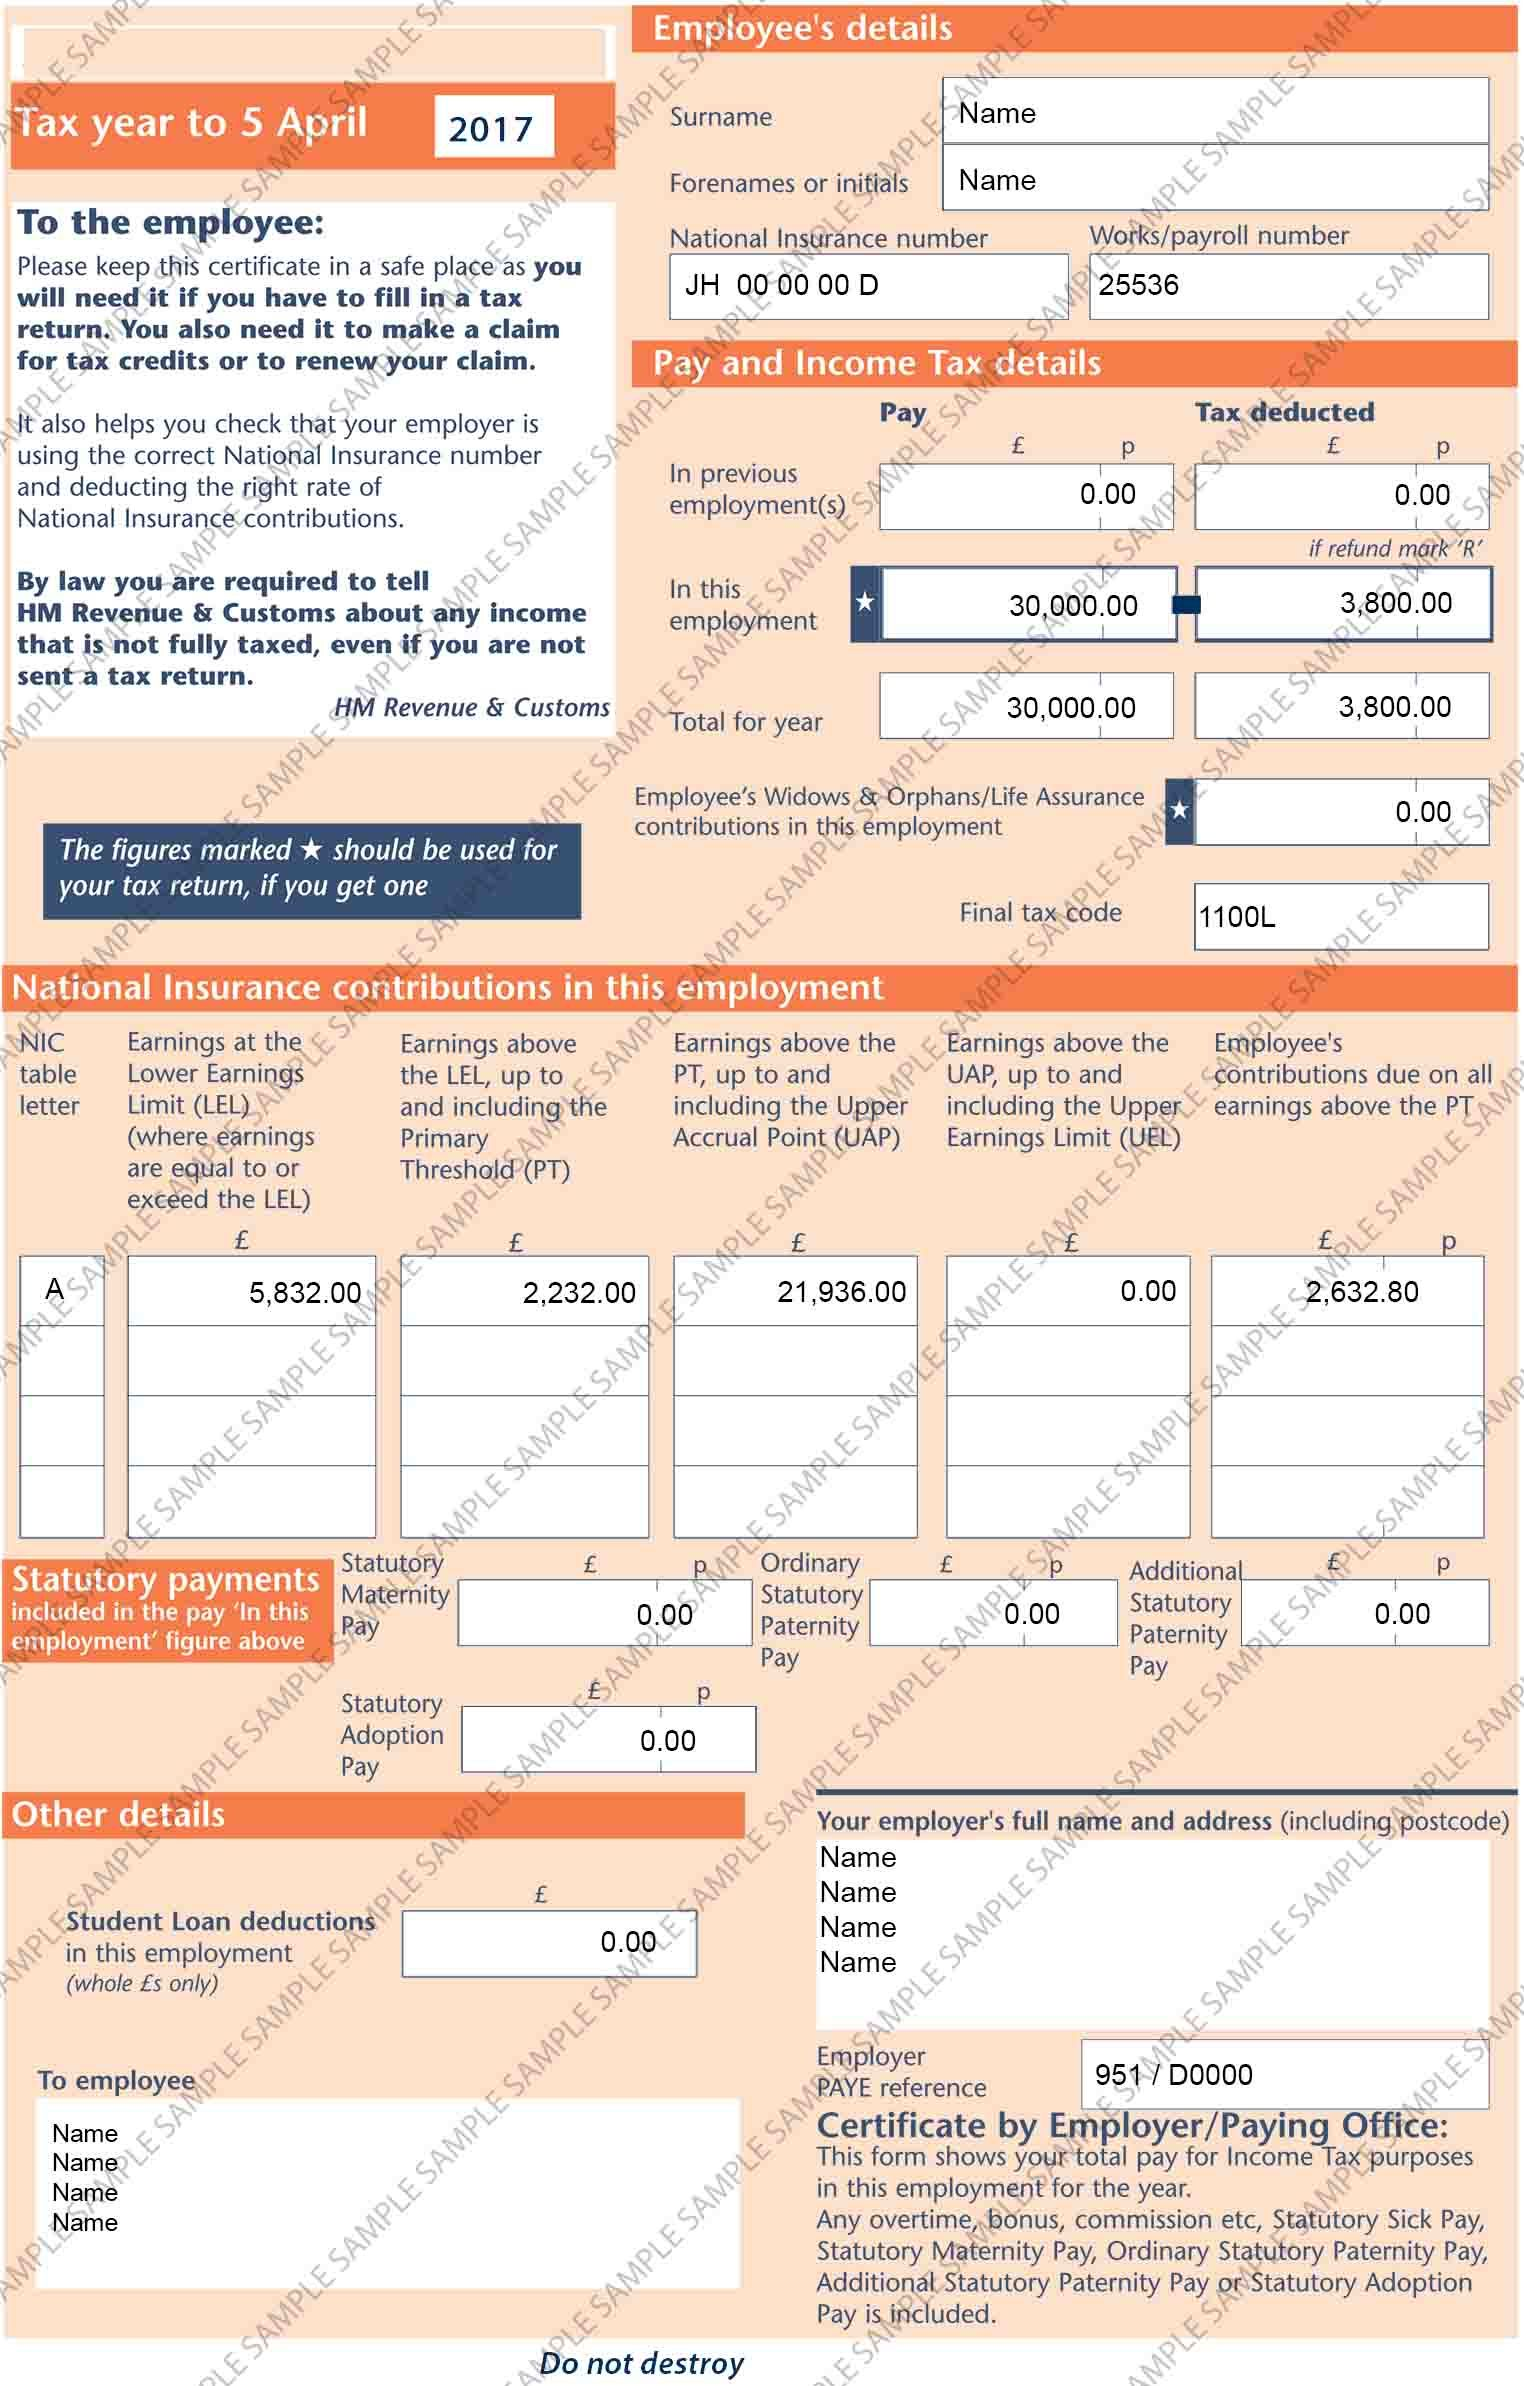 Hmrc P60 Digital Copy National Insurance Number Tax Credits